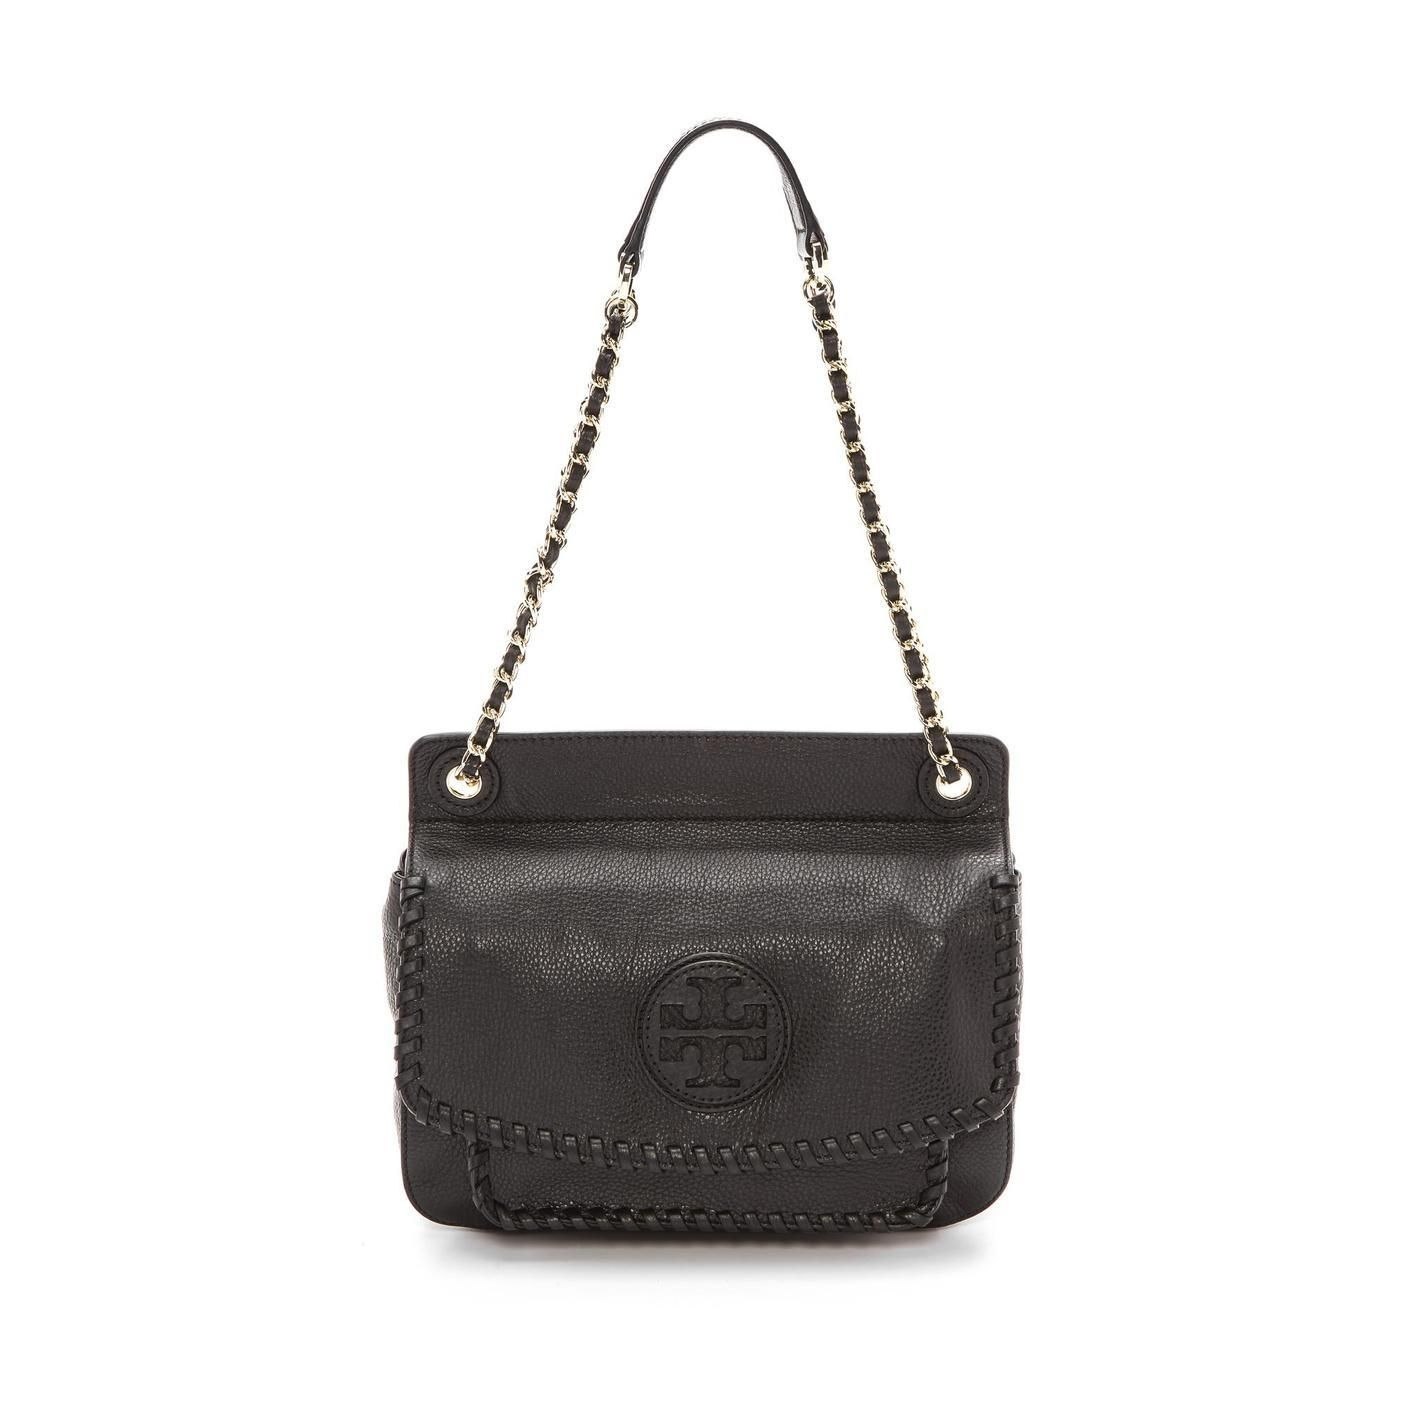 Tory Burch Leather Small Marion Saddle Shoulder Bag. Get one of the hottest  styles of the season! The Tory Burch Leather Small Marion Saddle Shoulder  Bag is ... 14d933a83200c